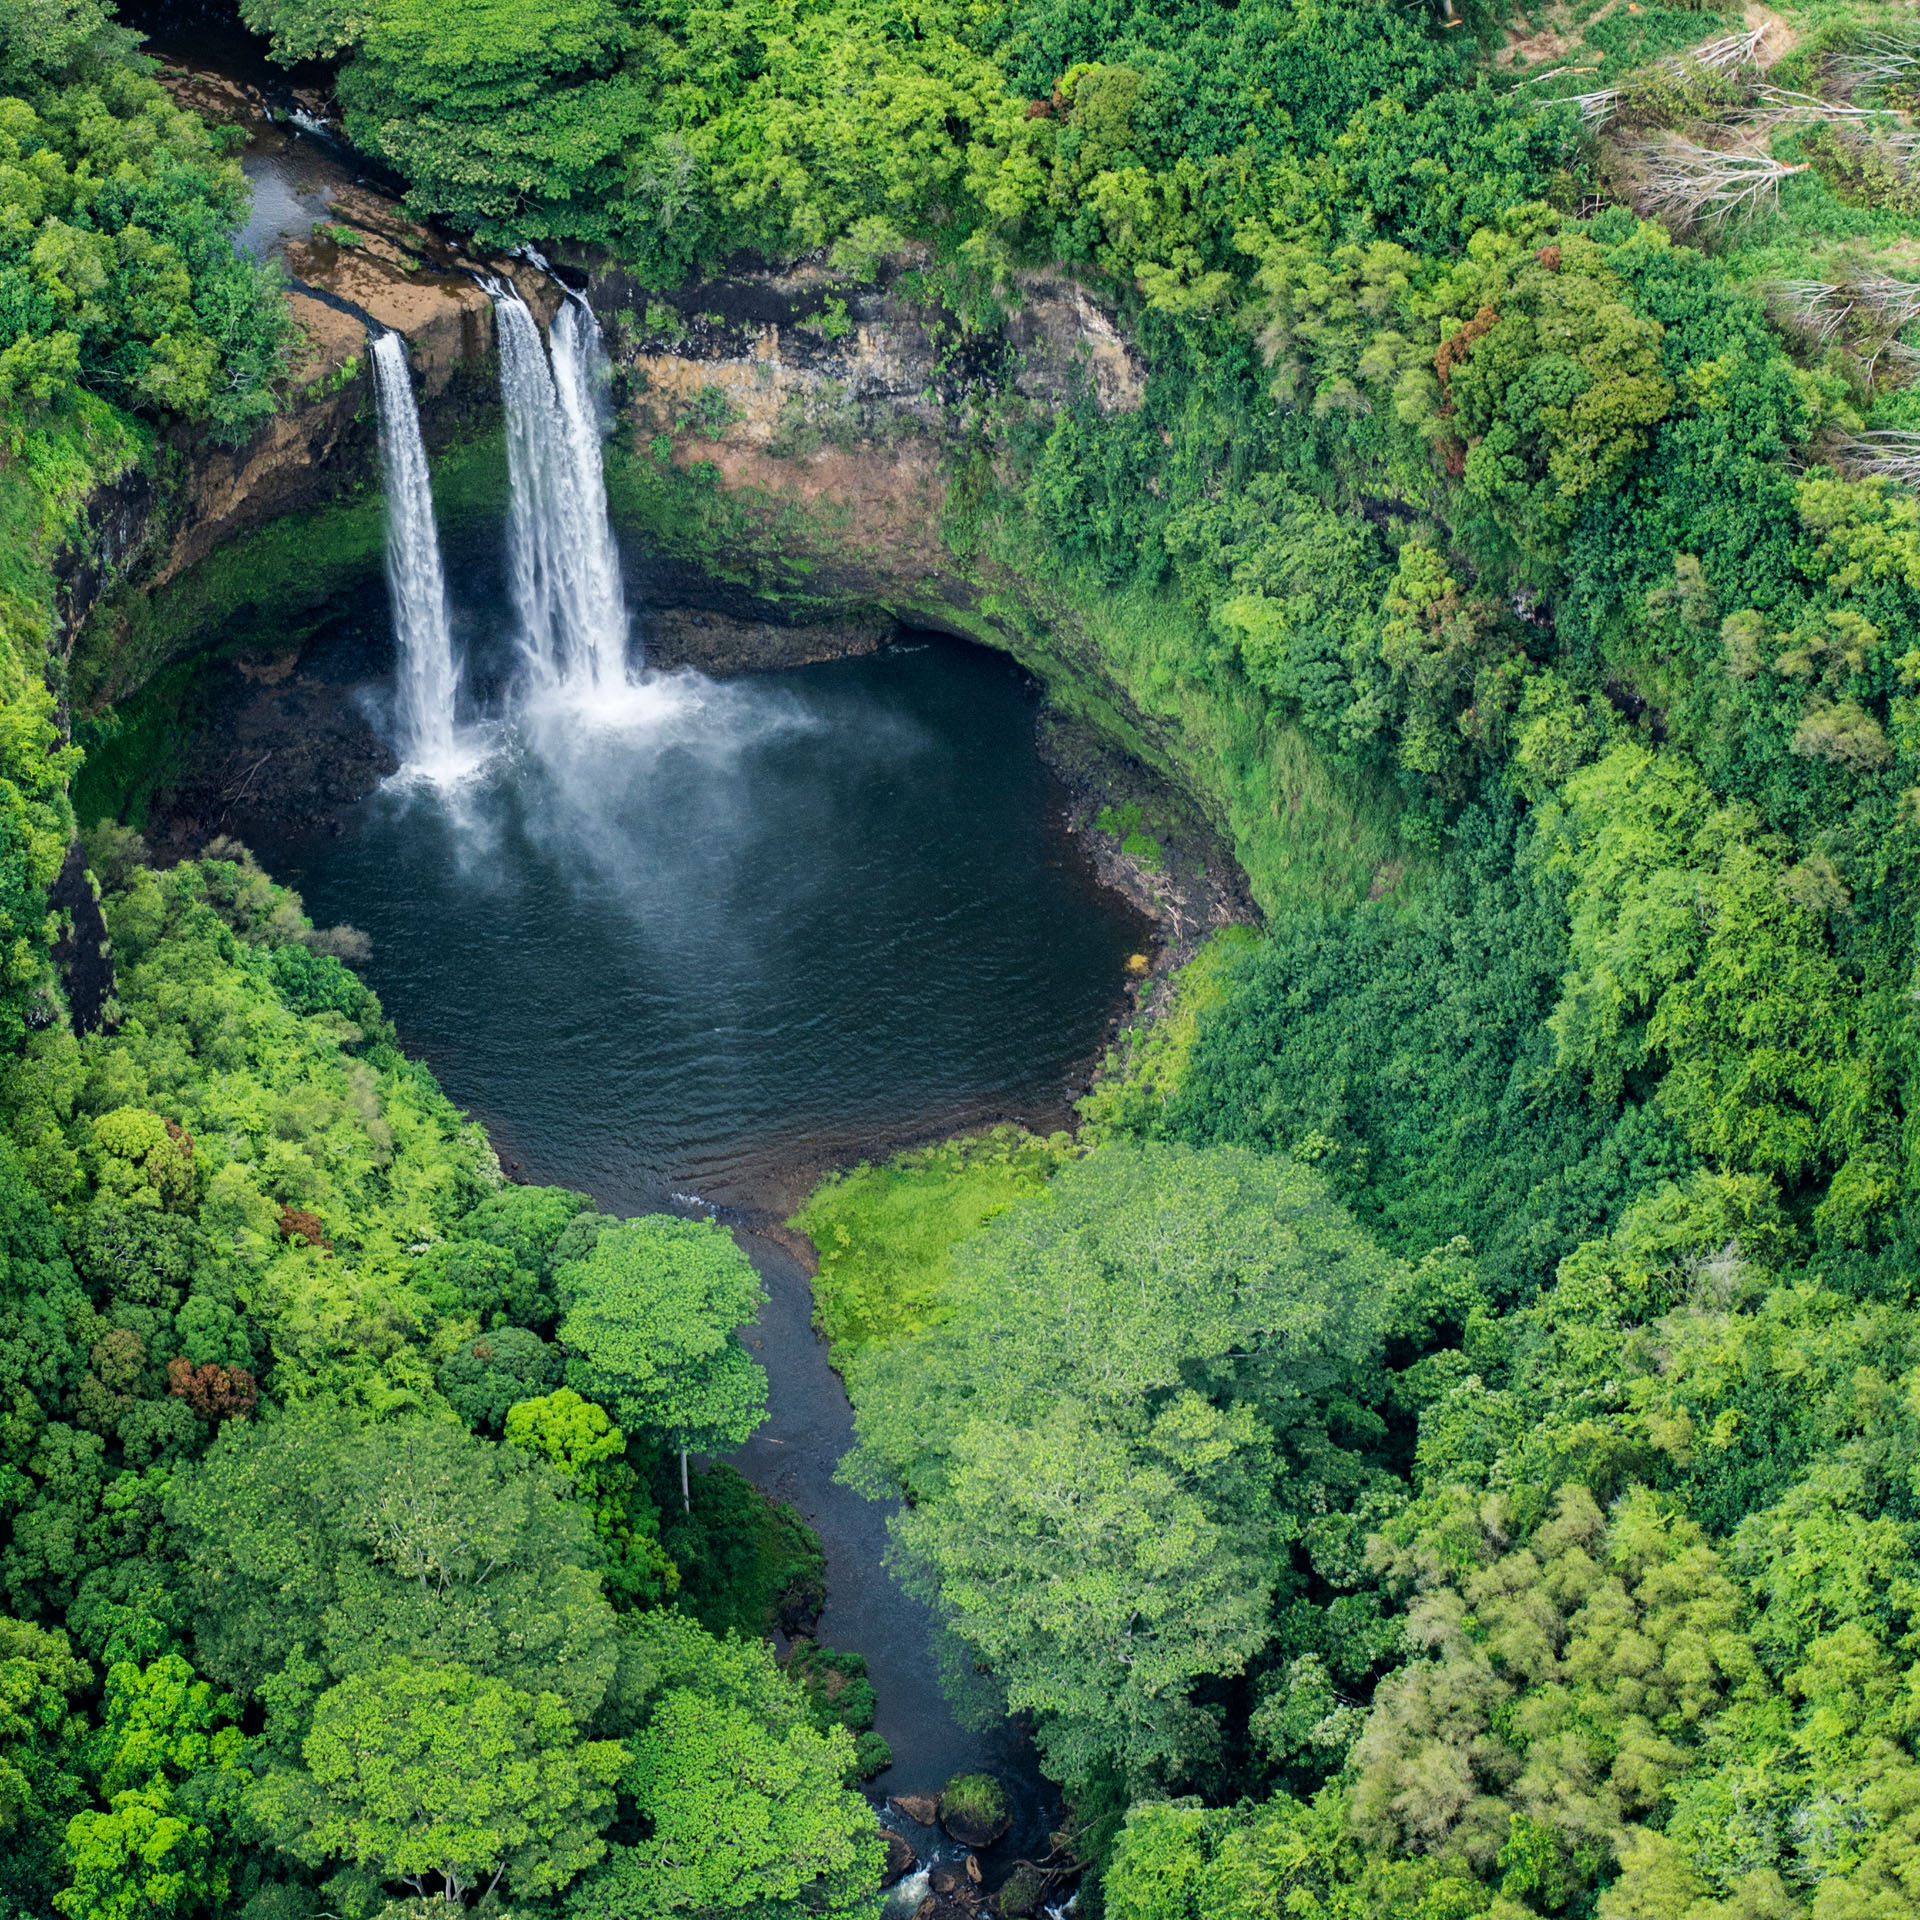 Aerial views of Wailua falls, Kauai